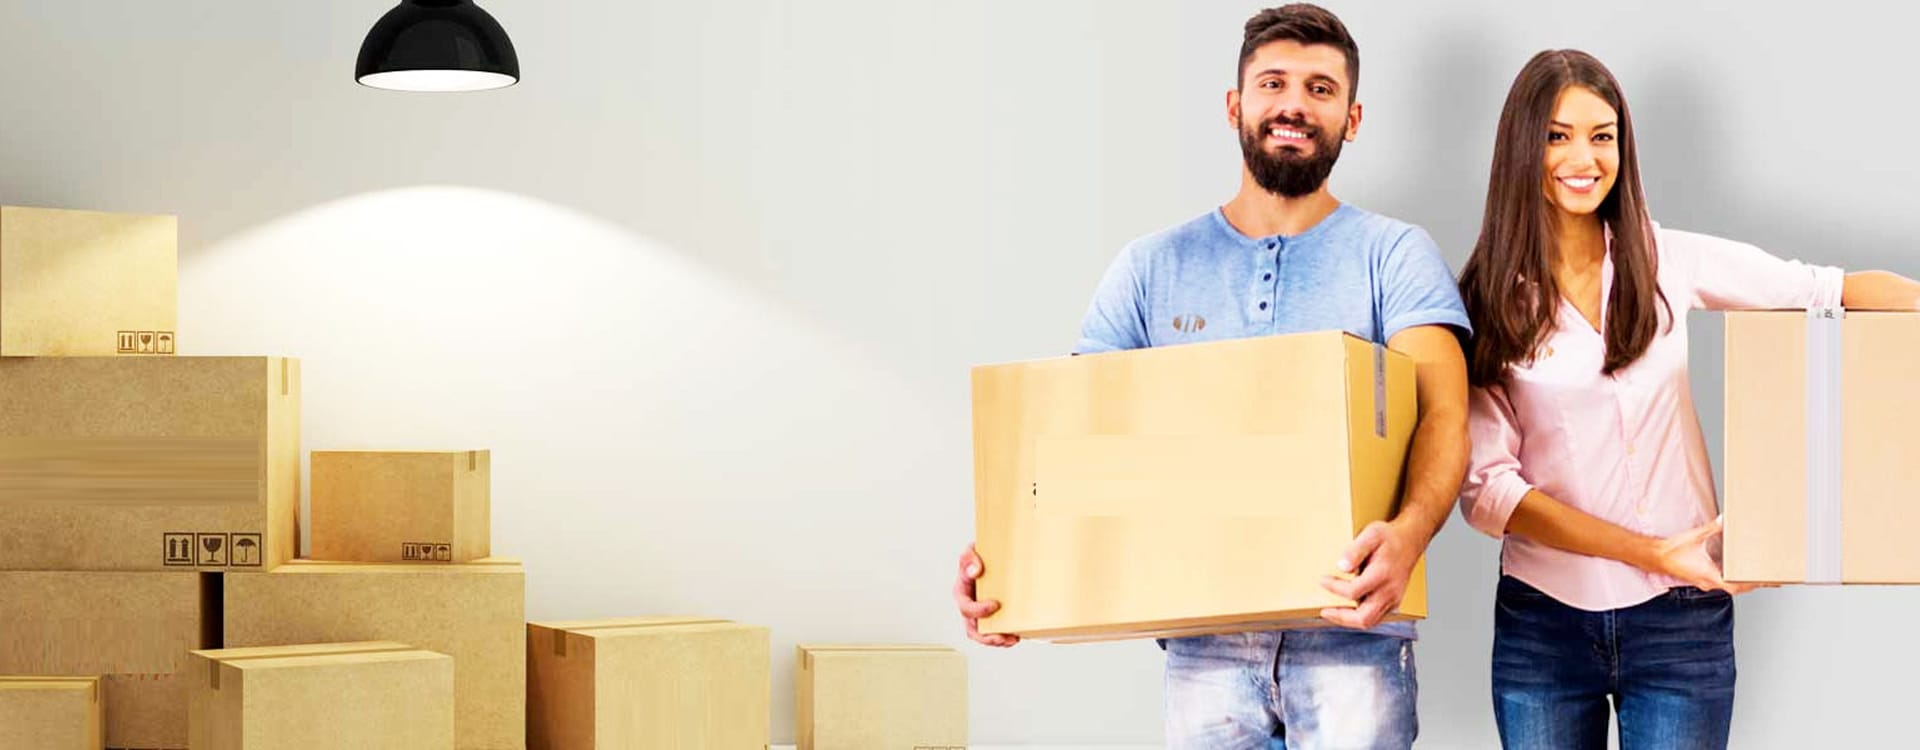 M J S Packers and Movers